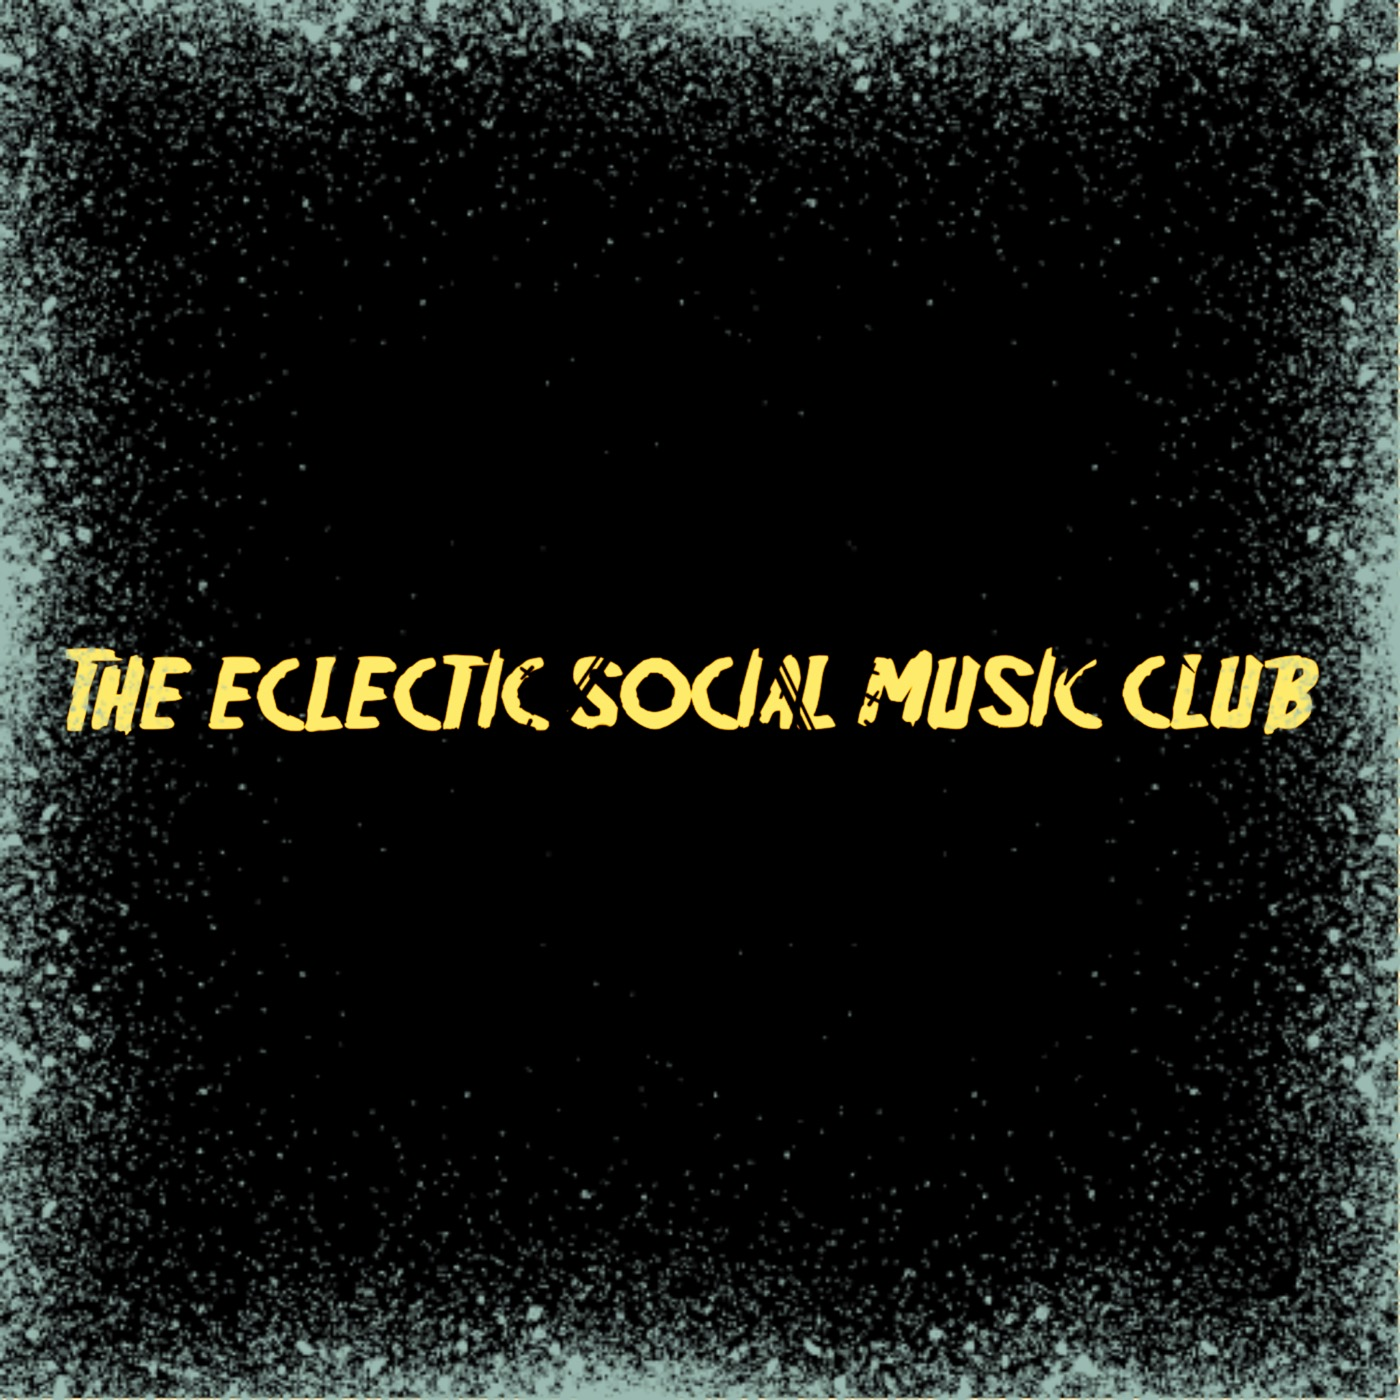 The Eclectic Social Music Club, News, Reviews, Intervews